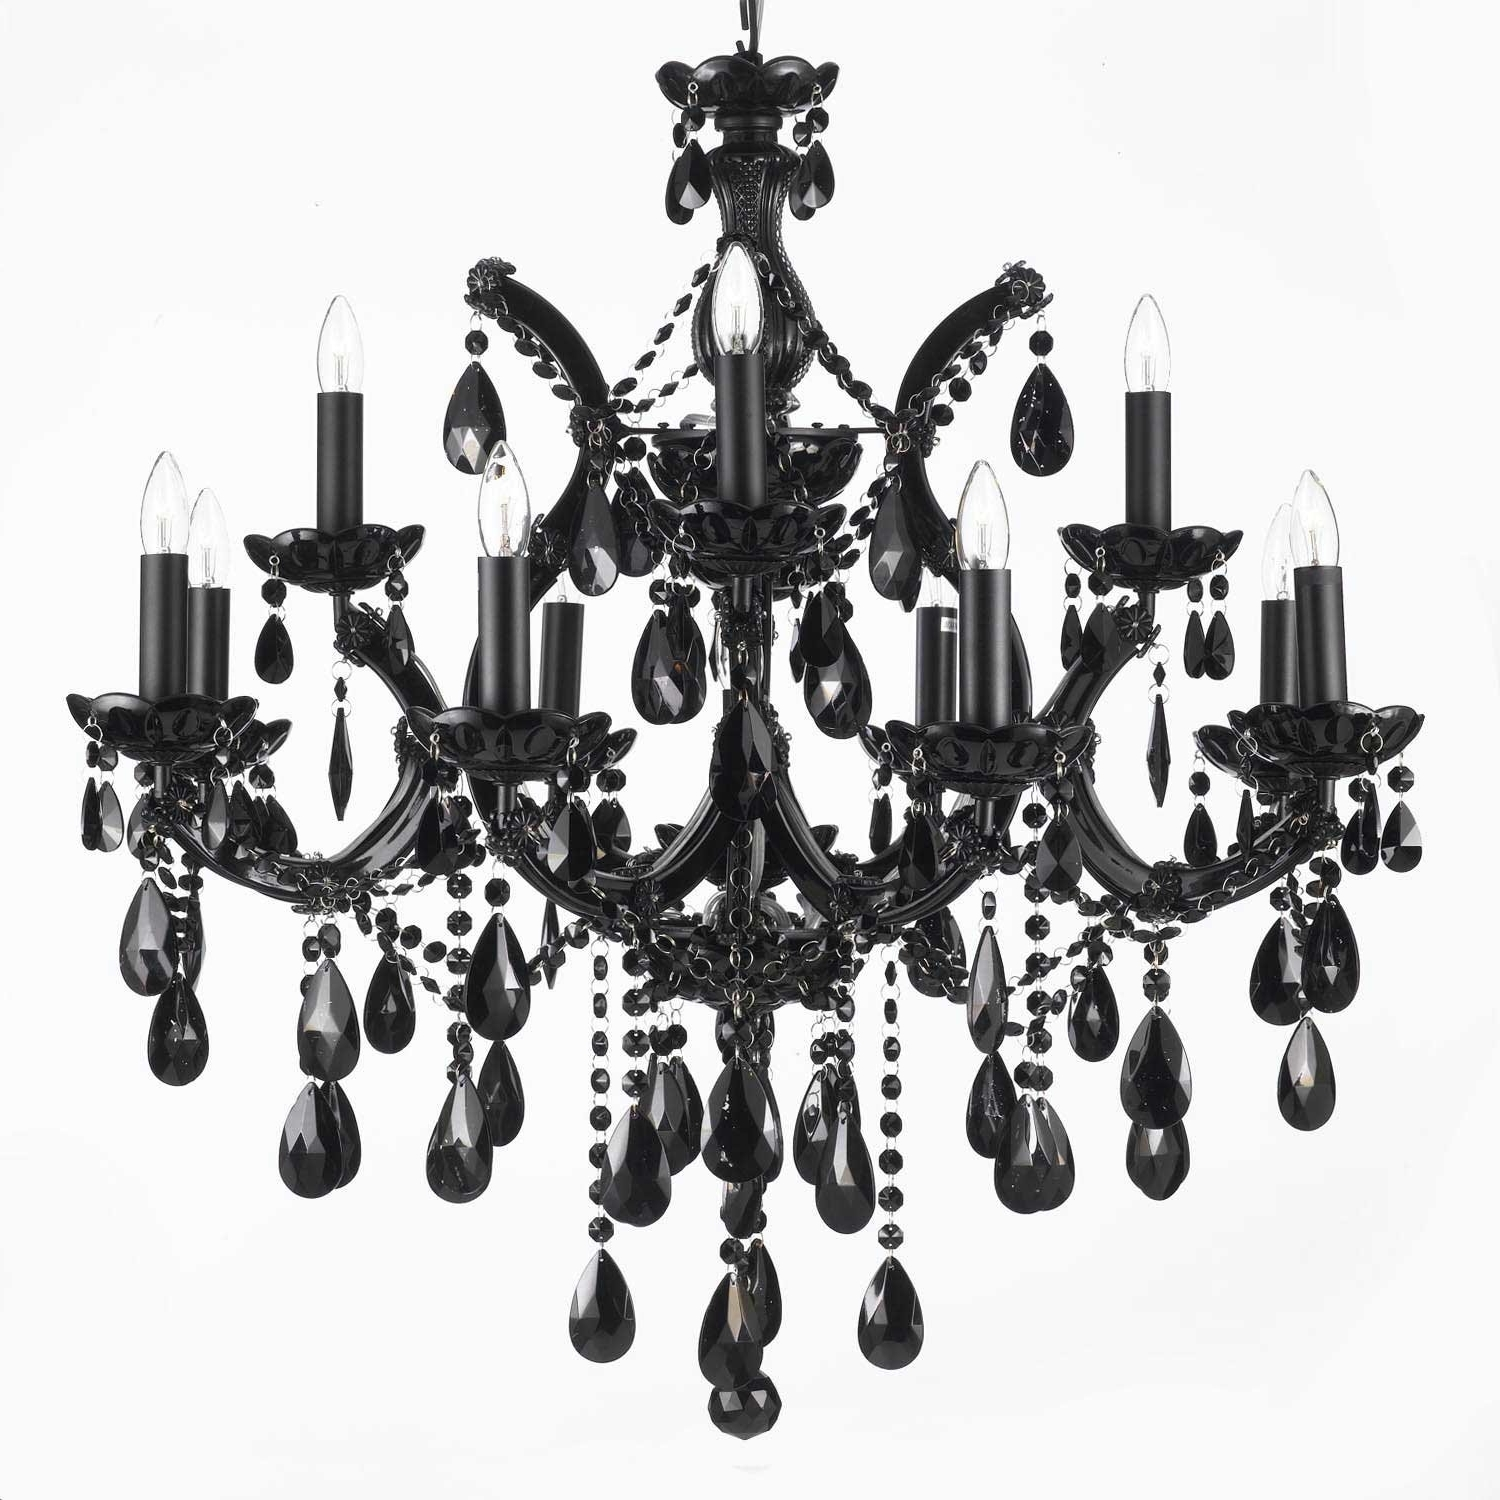 Jet Black Chandelier Crystal Lighting 30X28 – – Amazon For Most Recently Released Modern Black Chandelier (View 9 of 15)